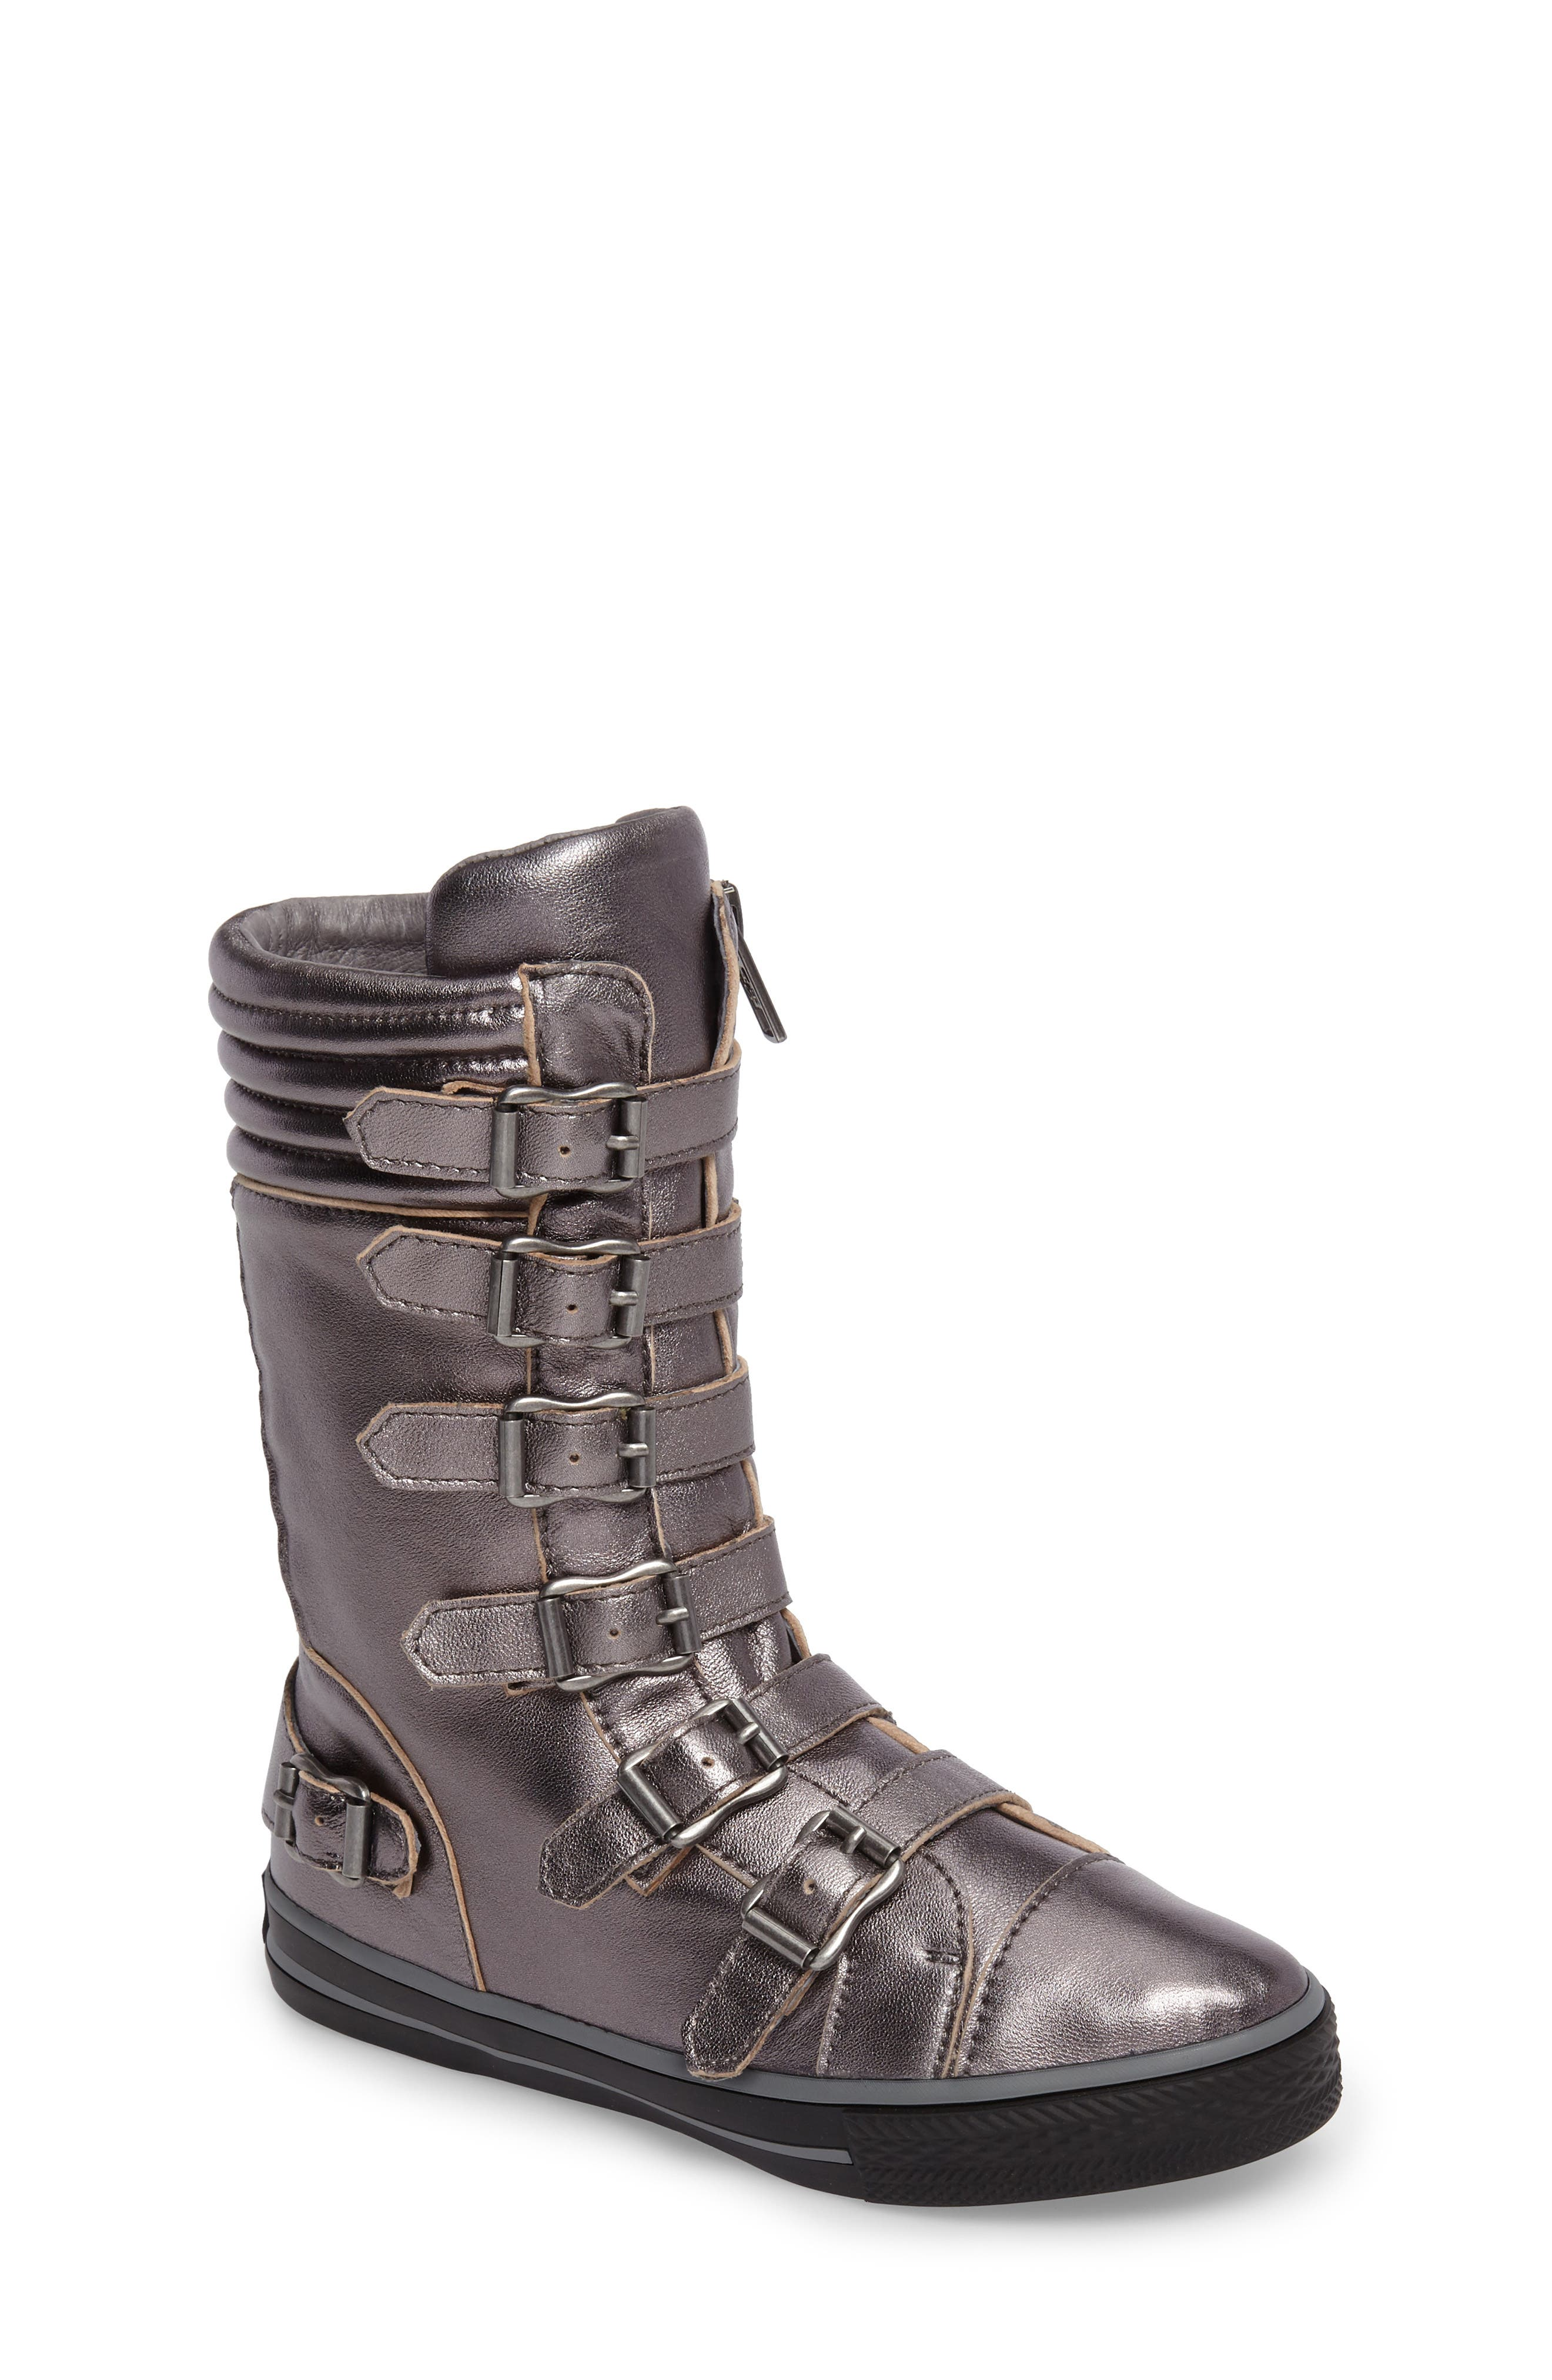 Main Image - Ash Vava Natalie Tall Sneaker Boot (Toddler, Little Kid & Big Kid)